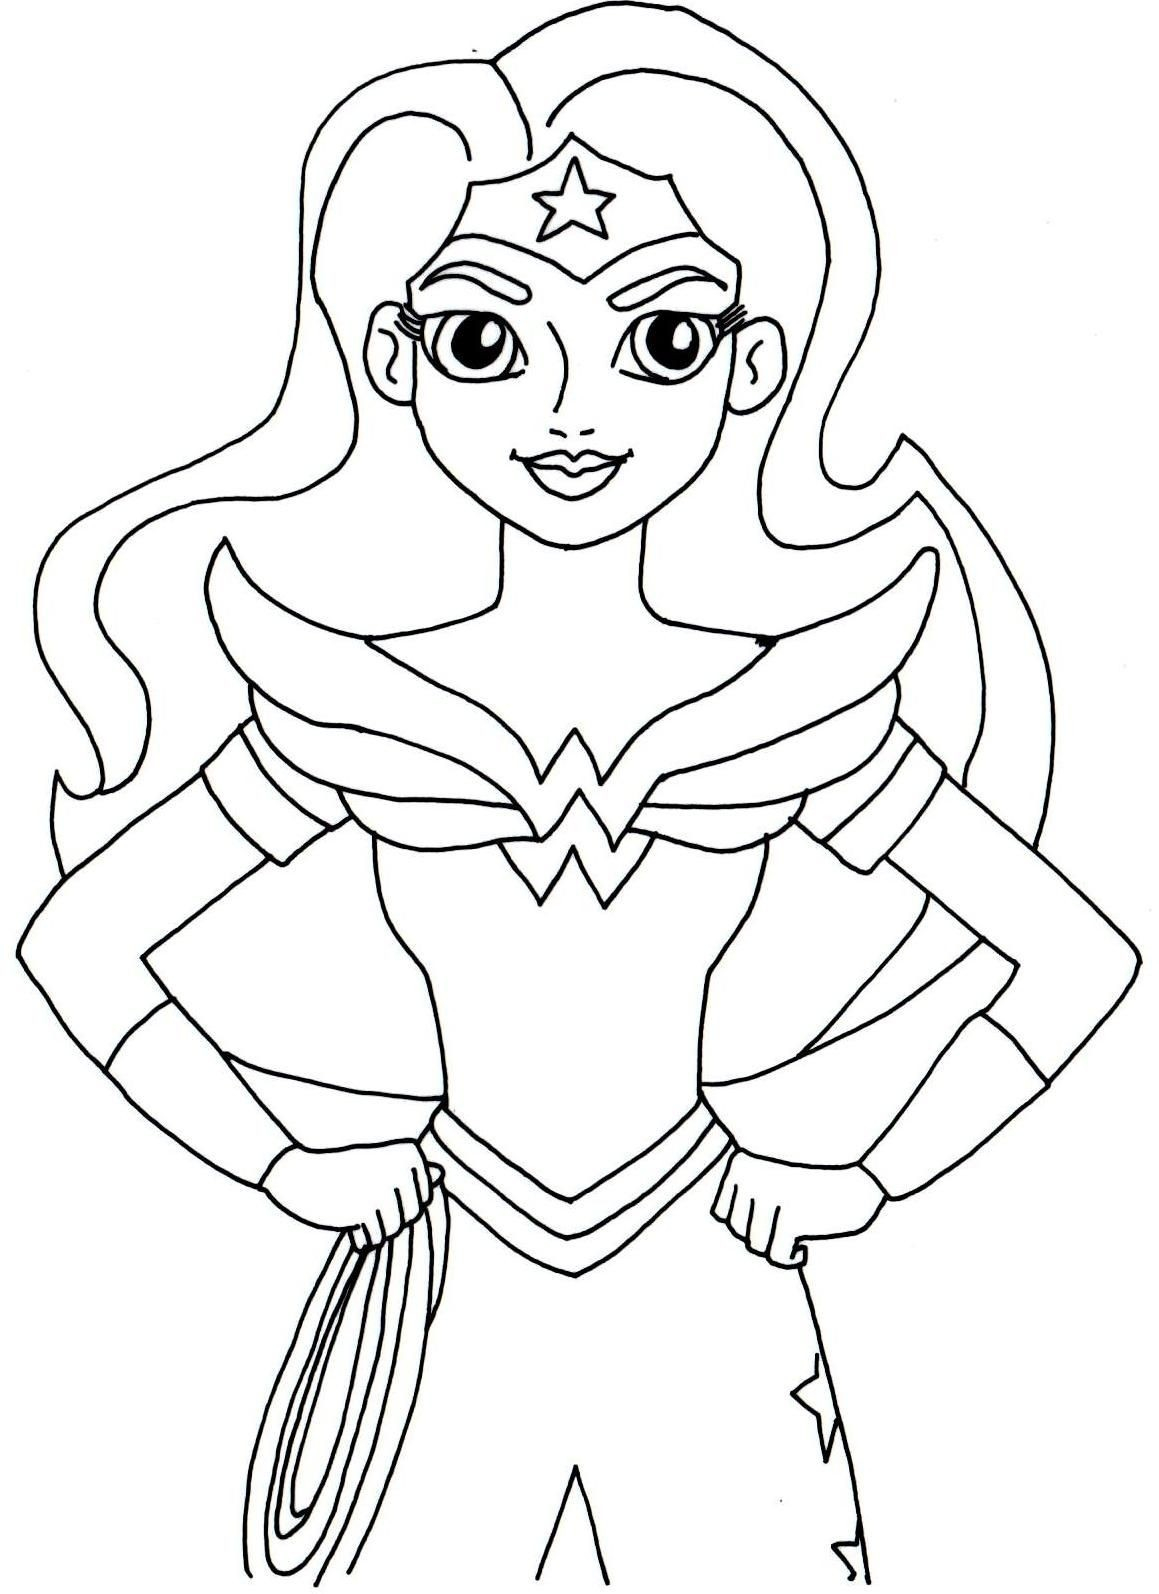 Jojo Siwa Coloring Pages Jojo Siwa